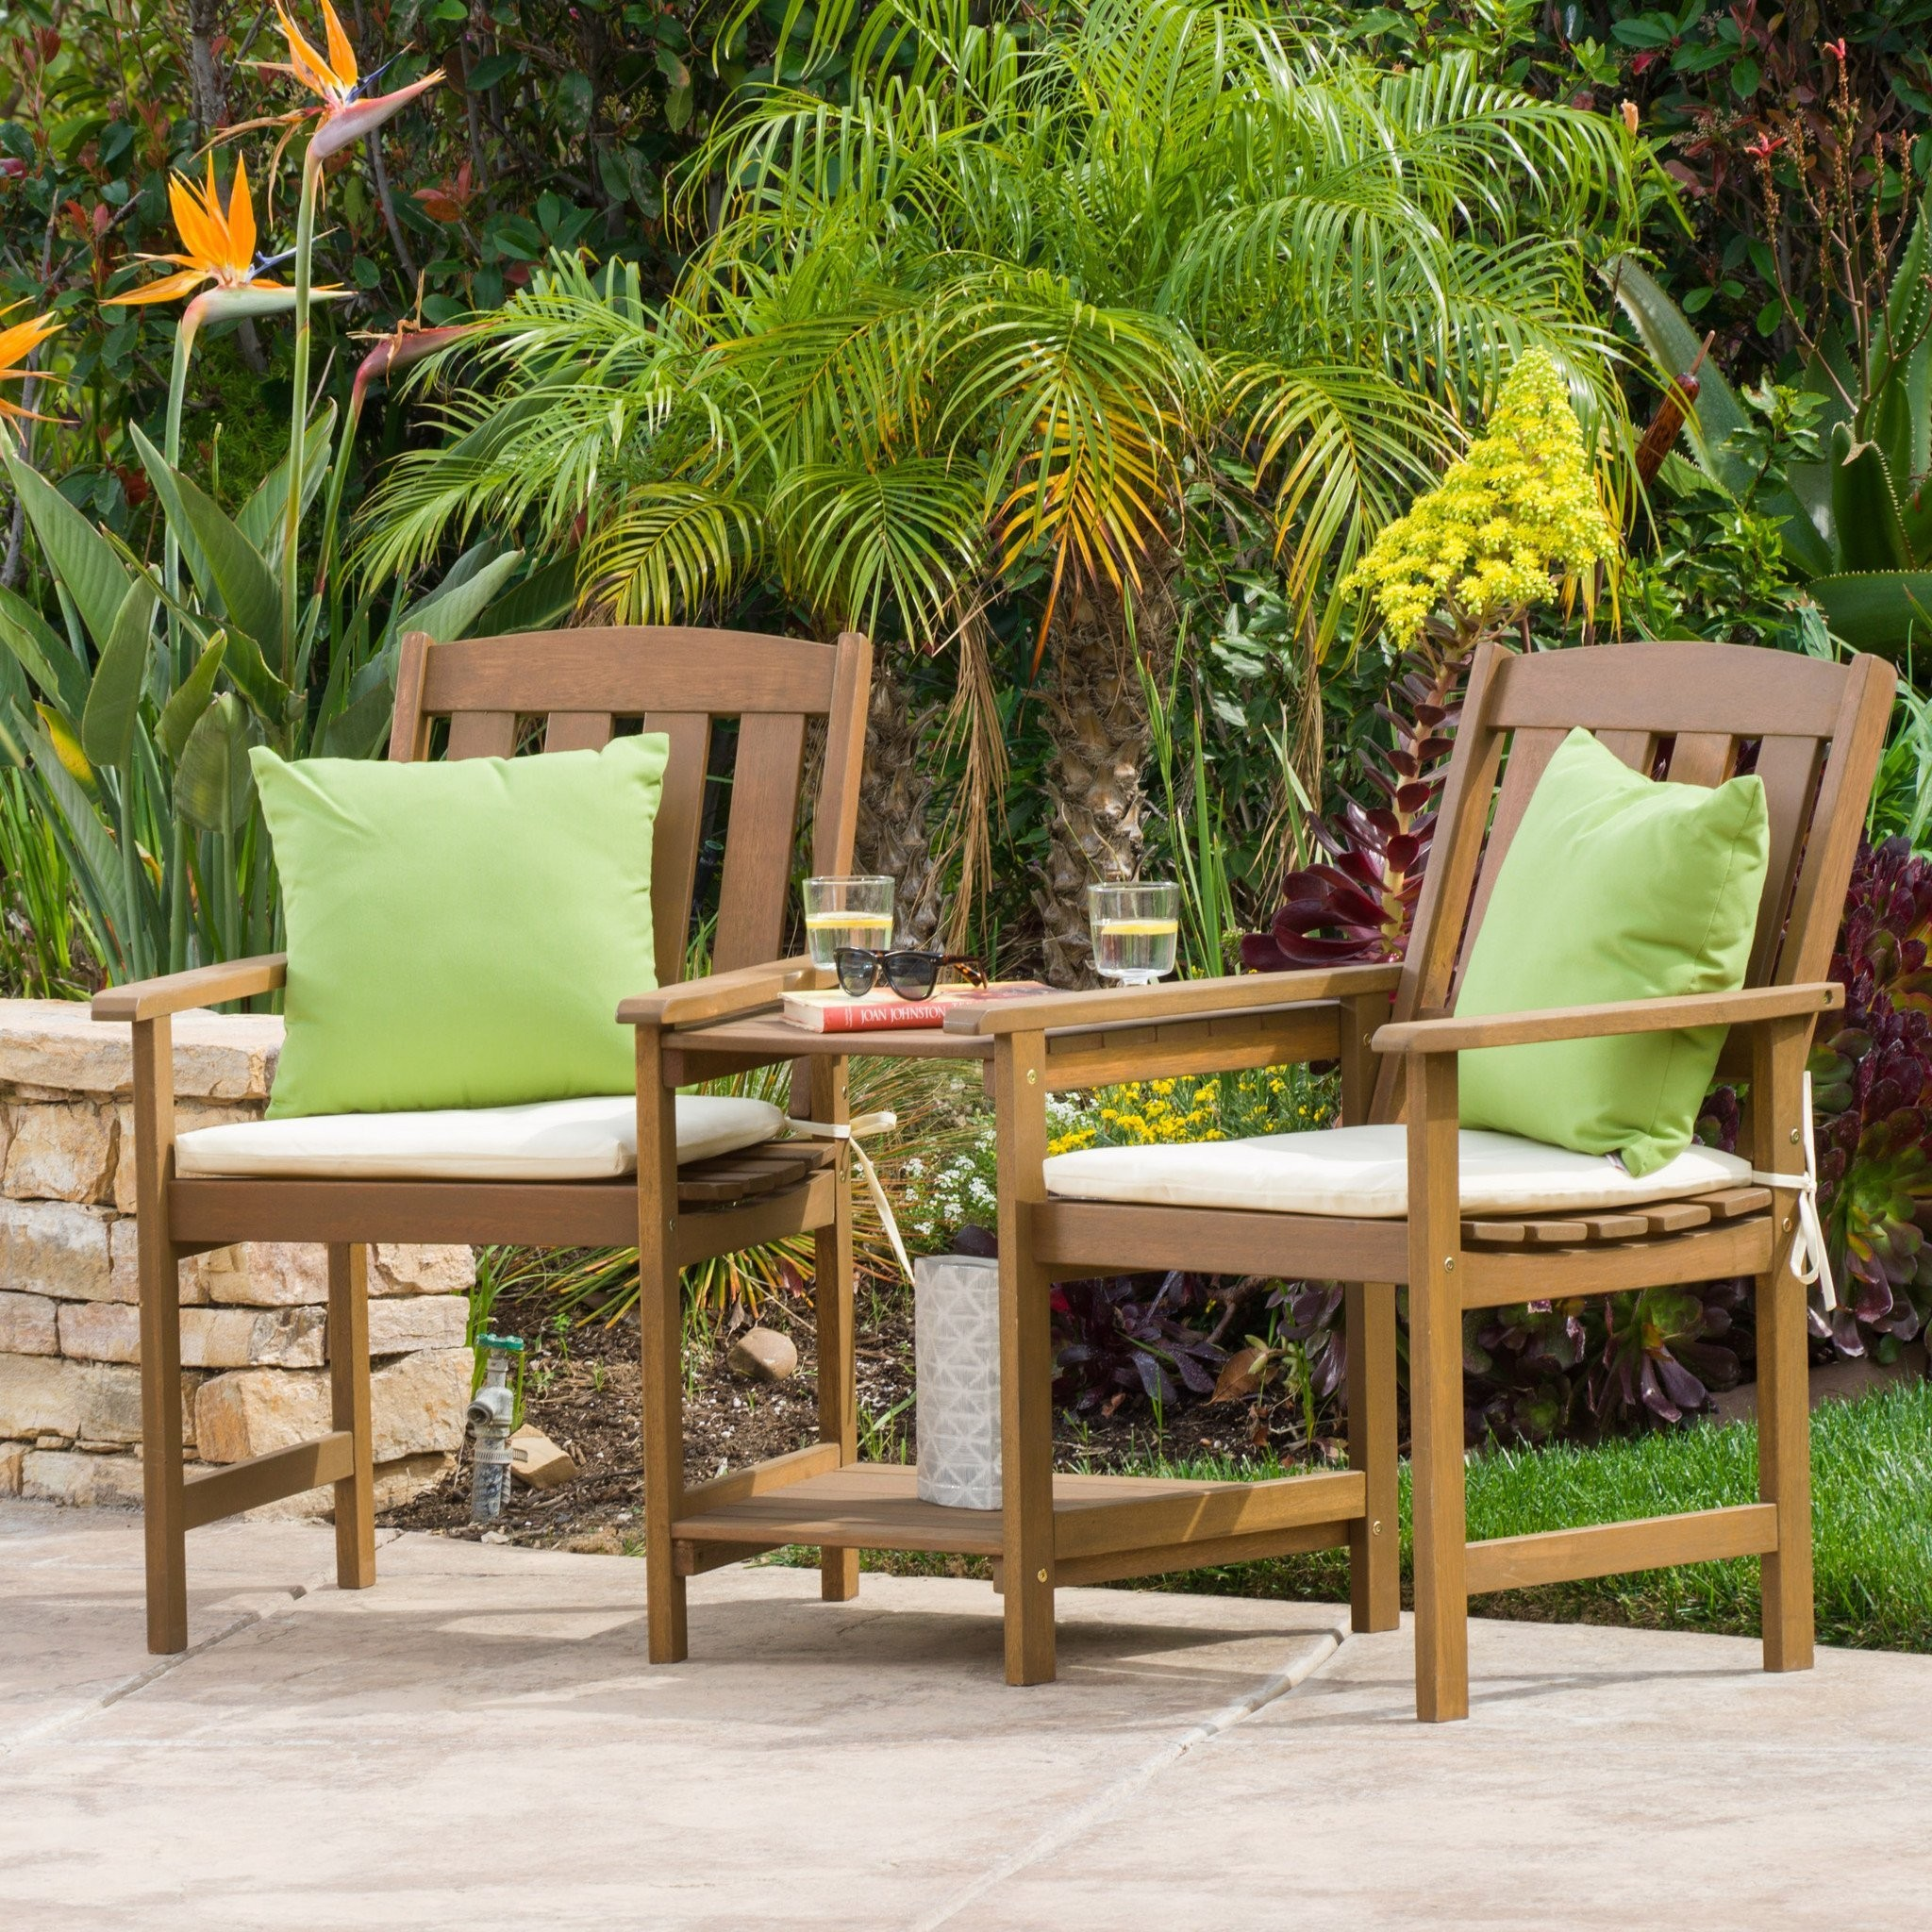 Las Brisas Outdoor Wood Adjoining 2-Seater Chairs...